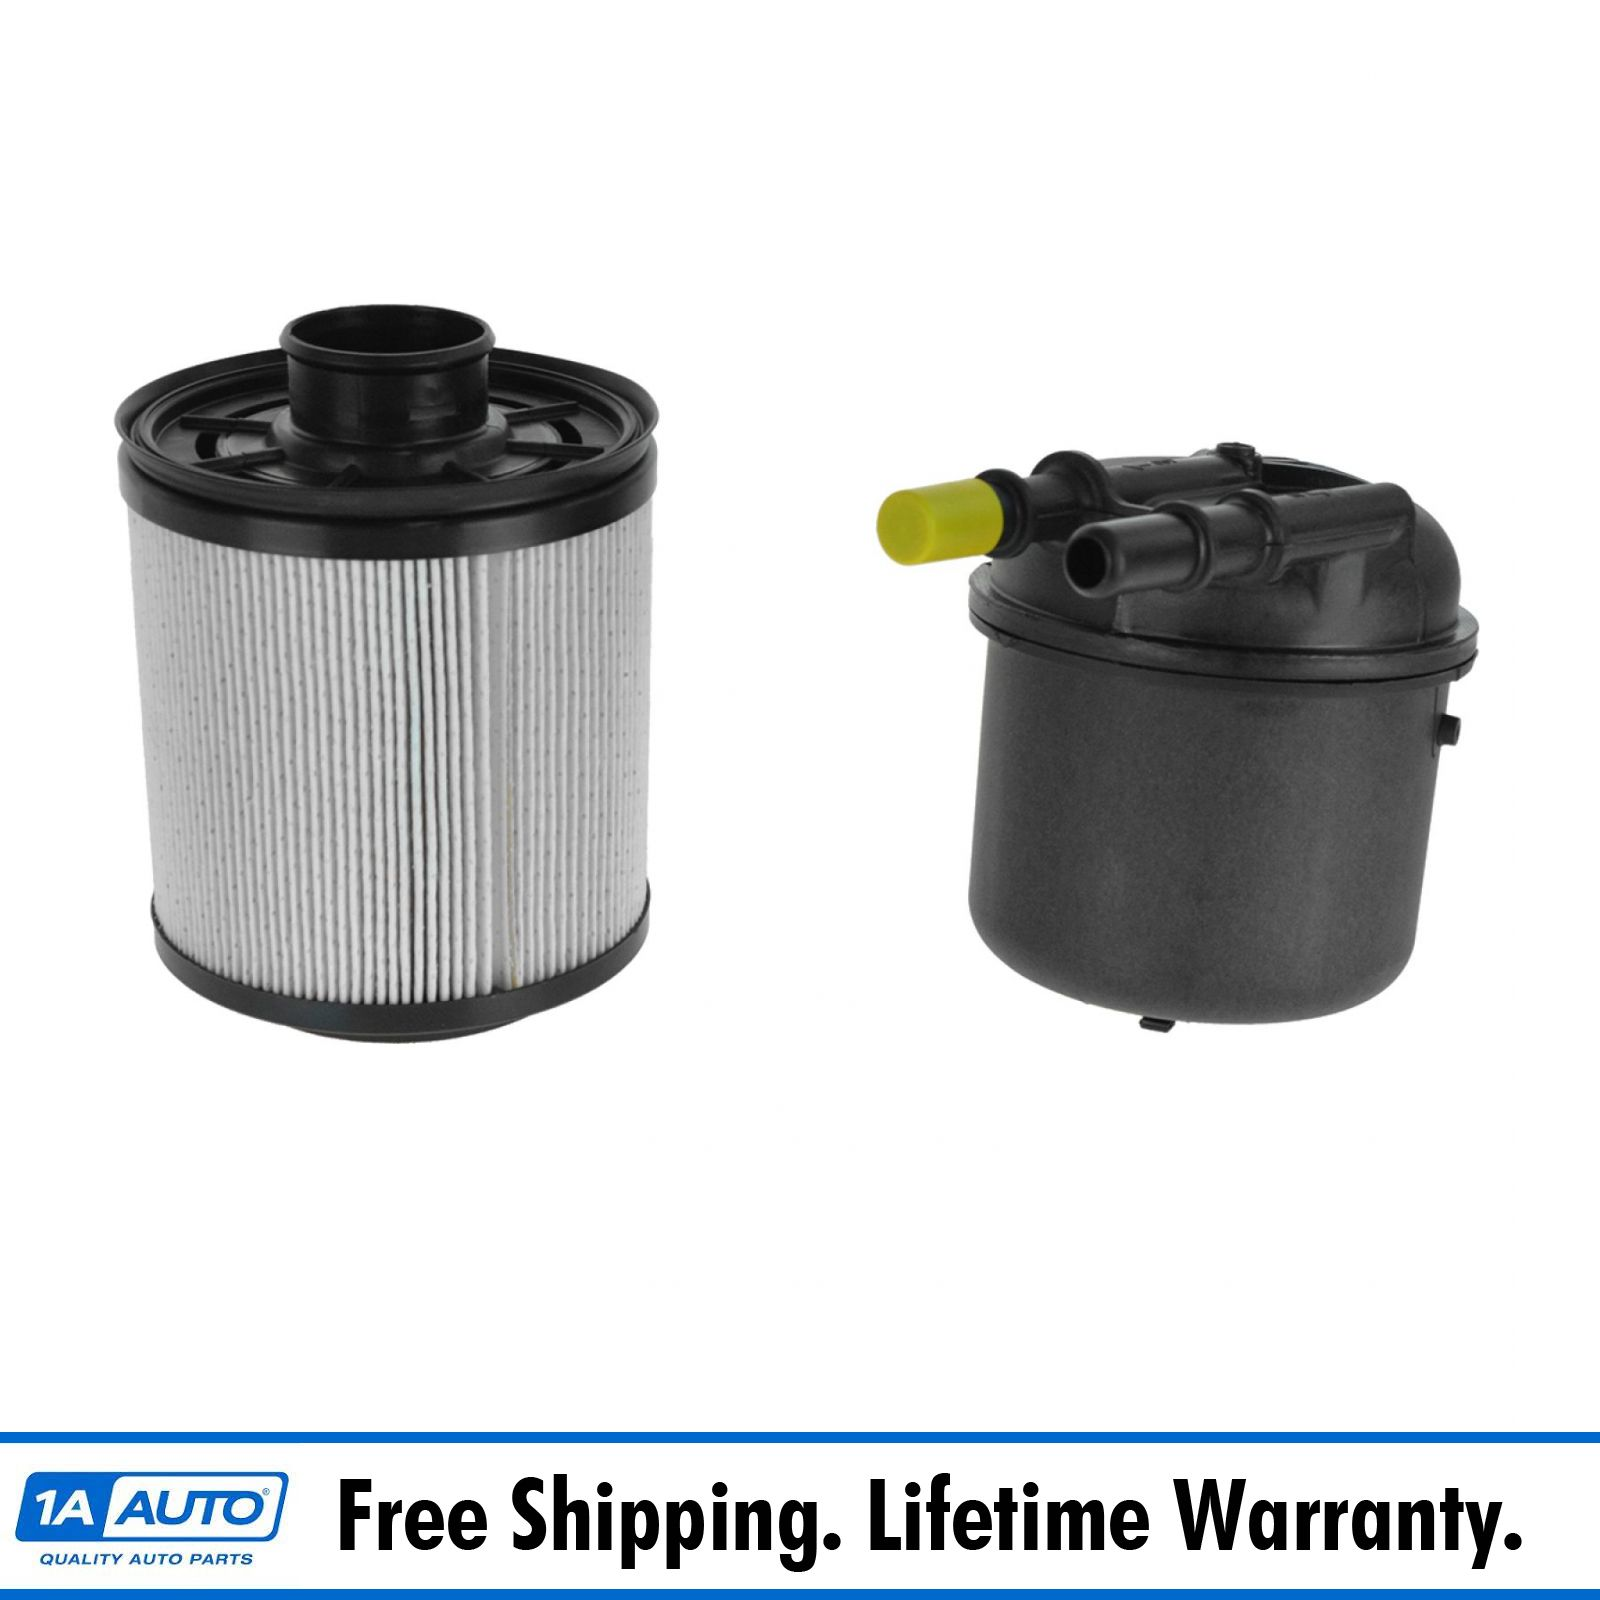 hight resolution of motorcraft fd 4615 fuel filter diesel for ford f250 f350 f450 f550 new